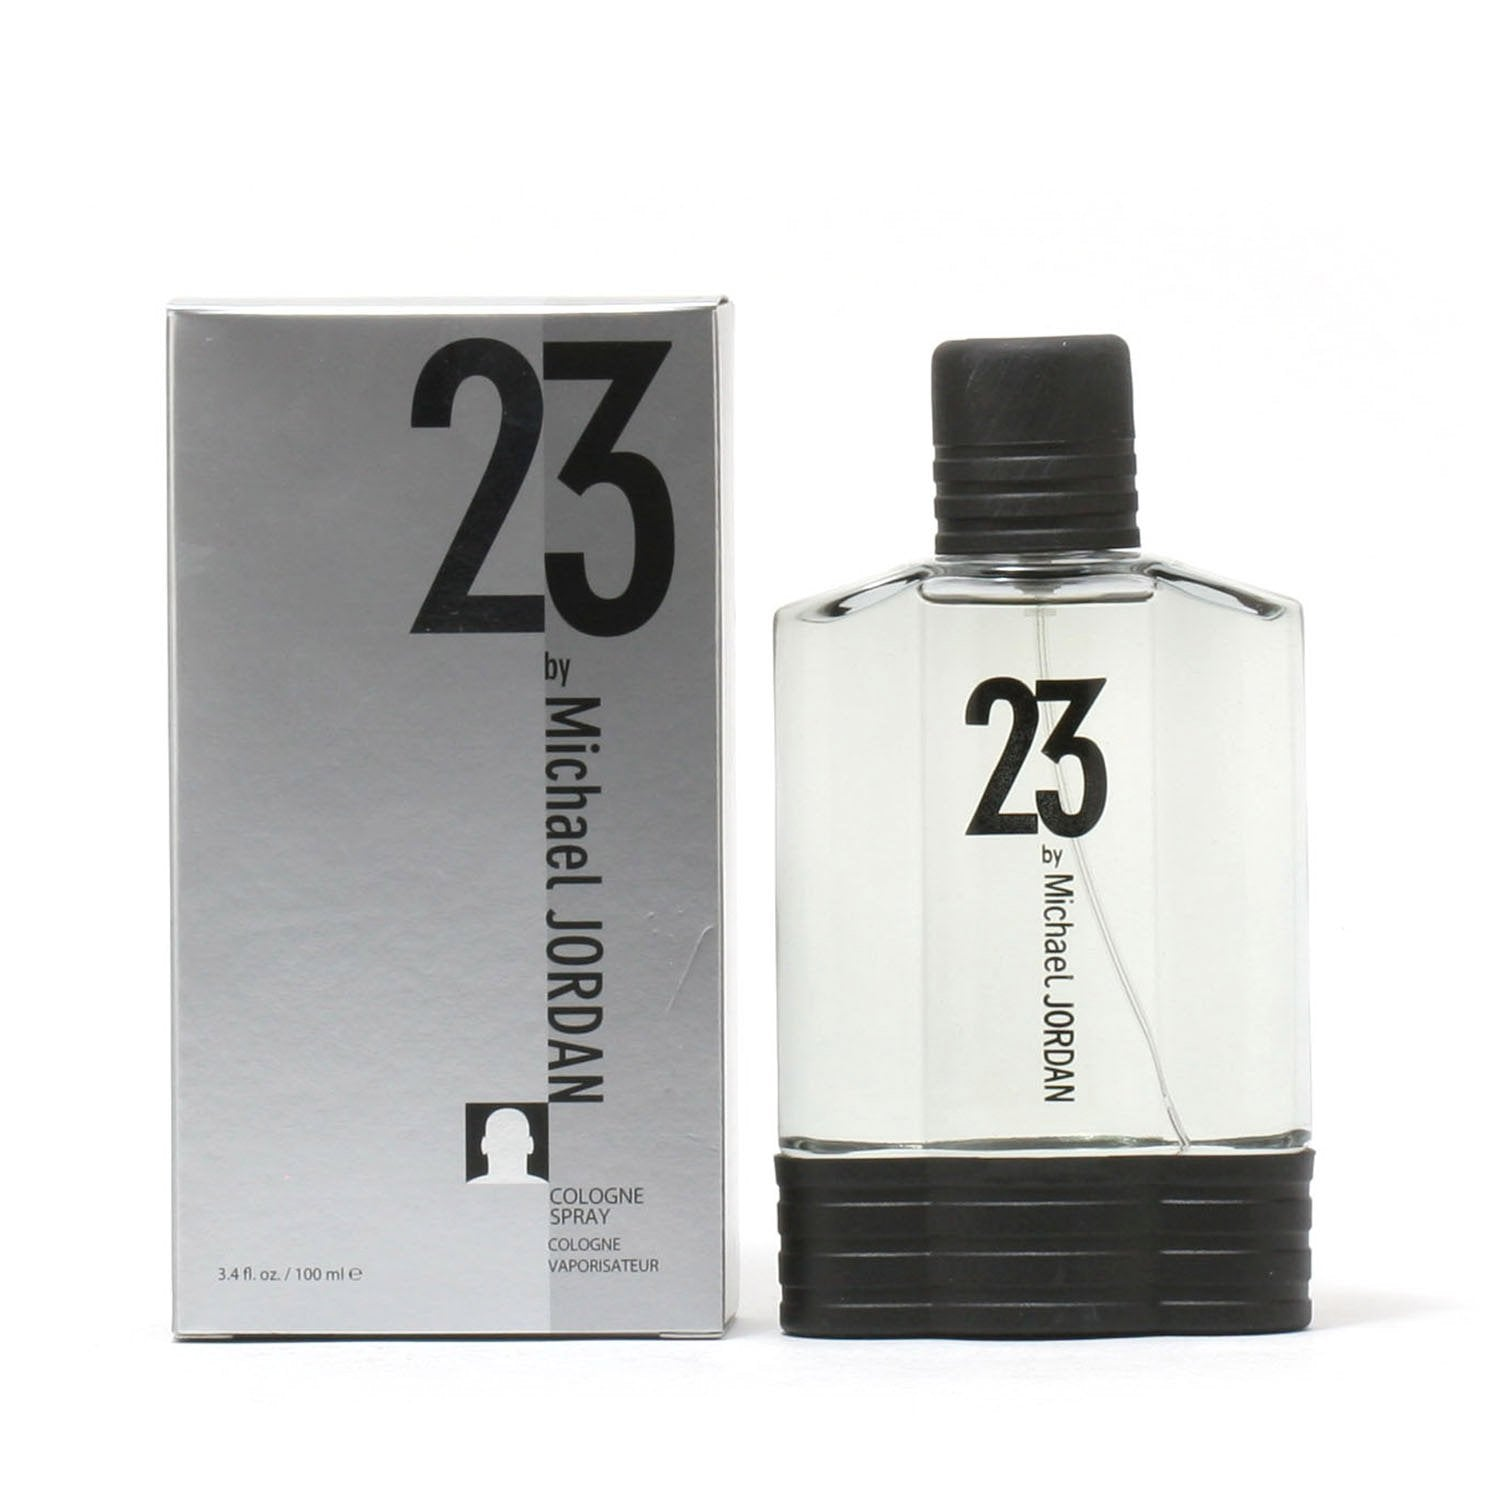 Cologne - 23 FOR MEN BY MICHAEL JORDAN - COLOGNE SPRAY, 3.4 OZ